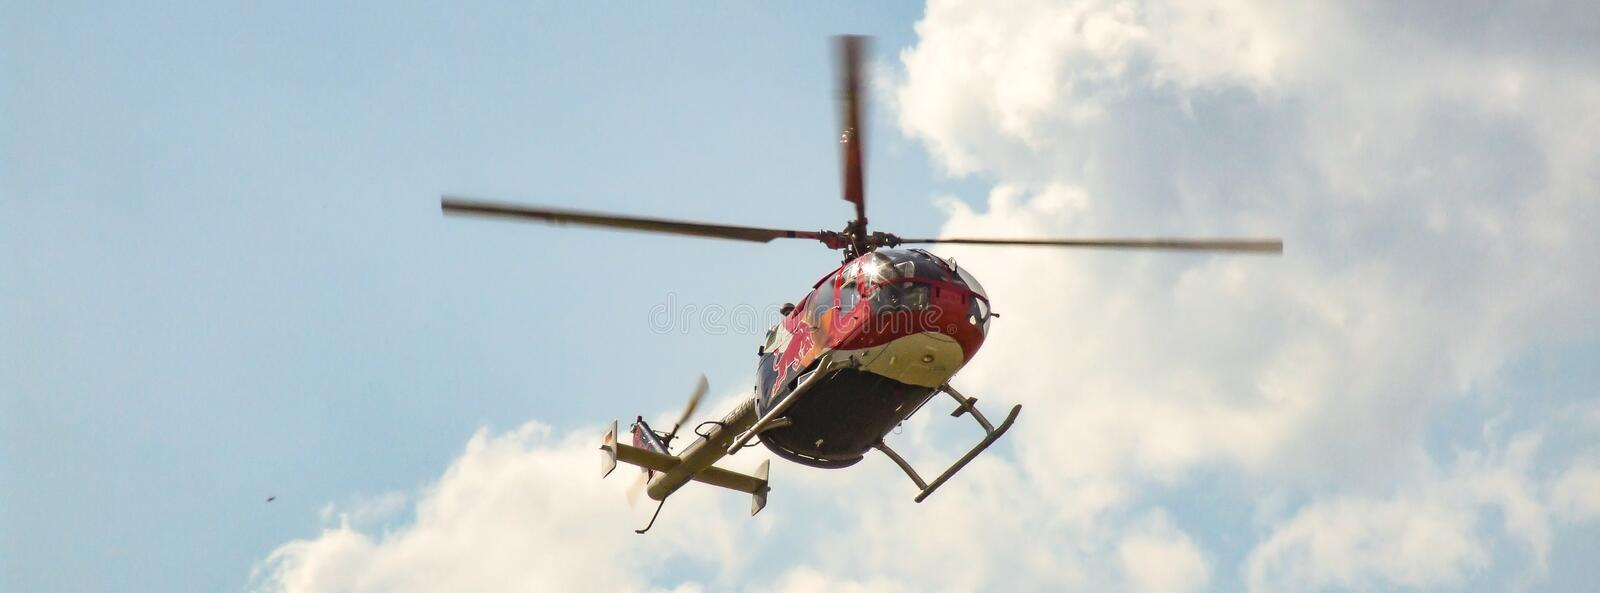 Eurocopter MBB Bo-105 of The Flying Bulls in flight. royalty free stock photography